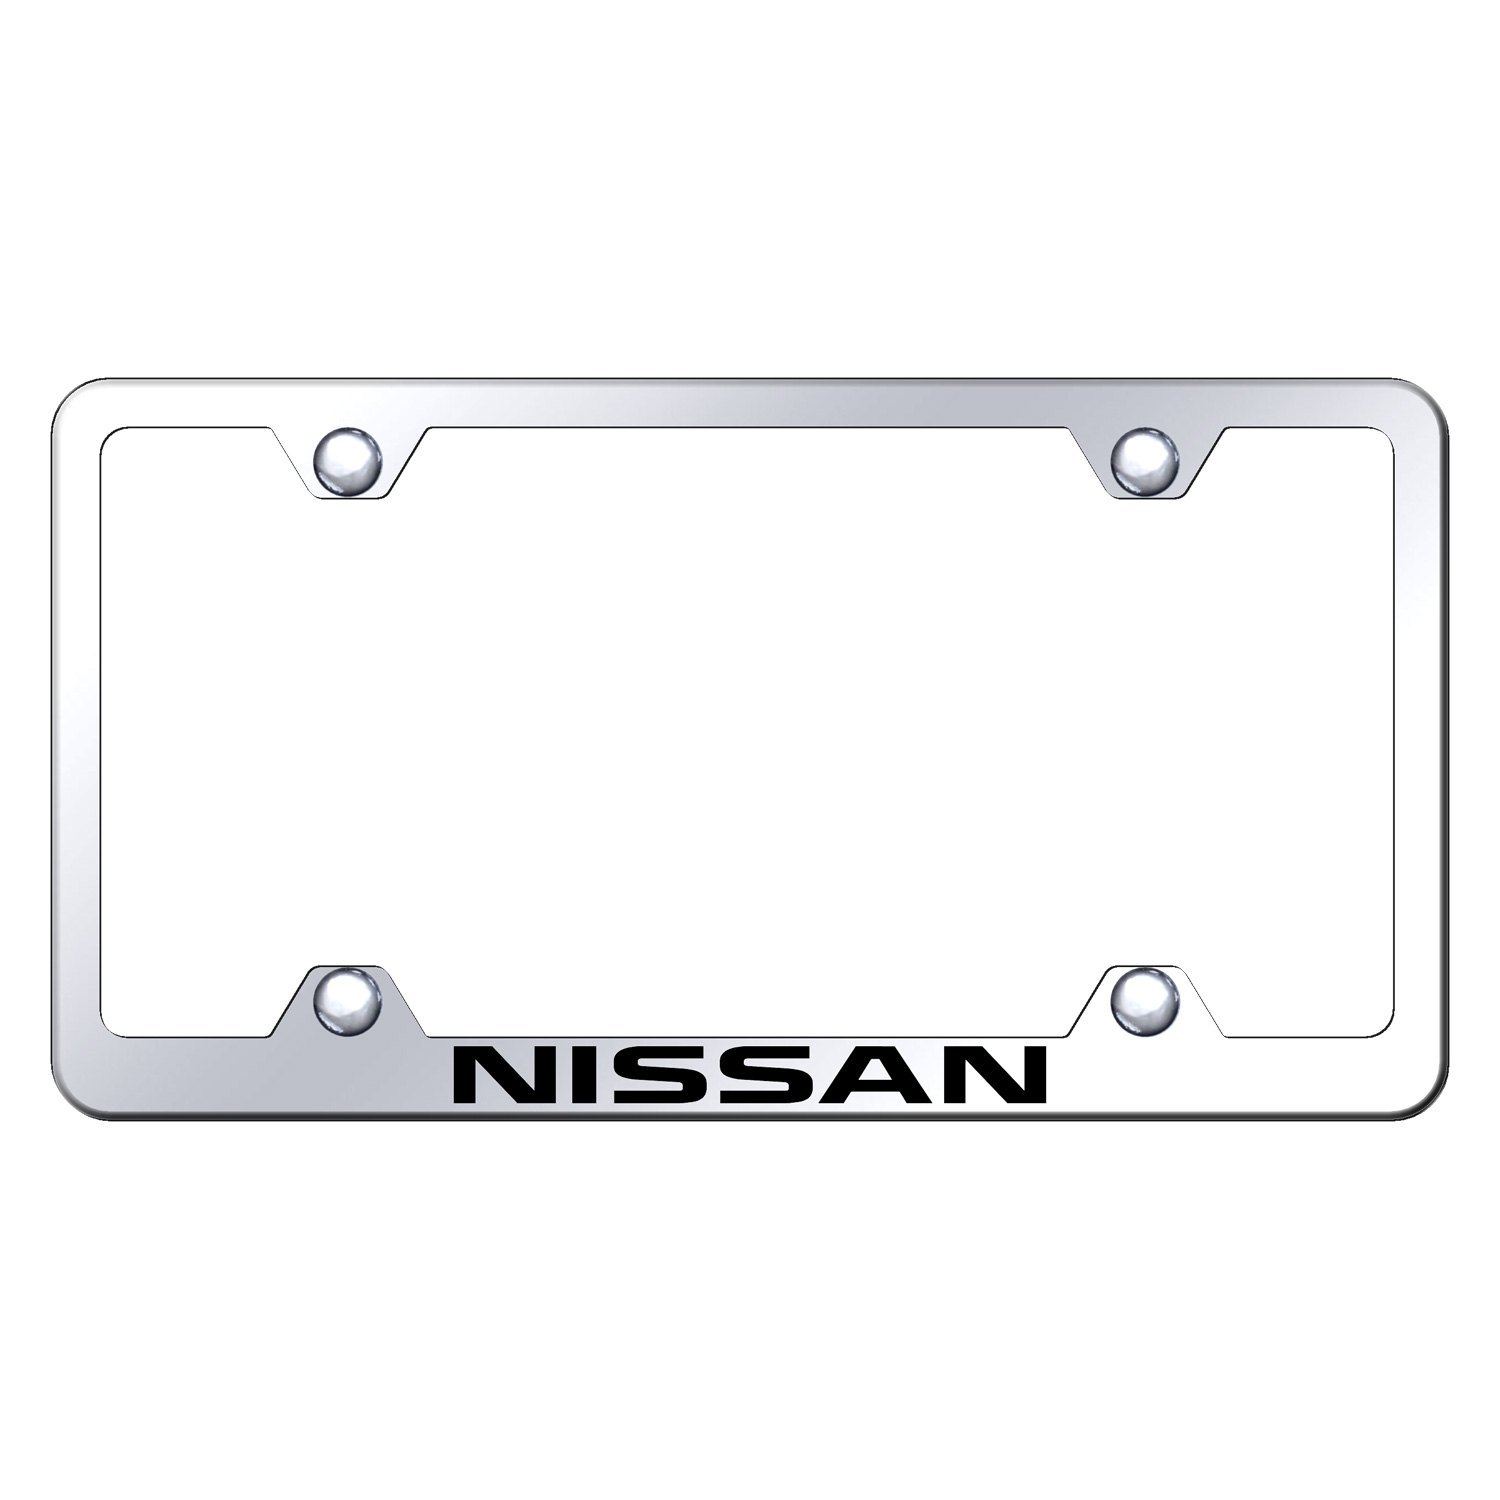 autogold wide body license plate frame with laser etched nissan logo